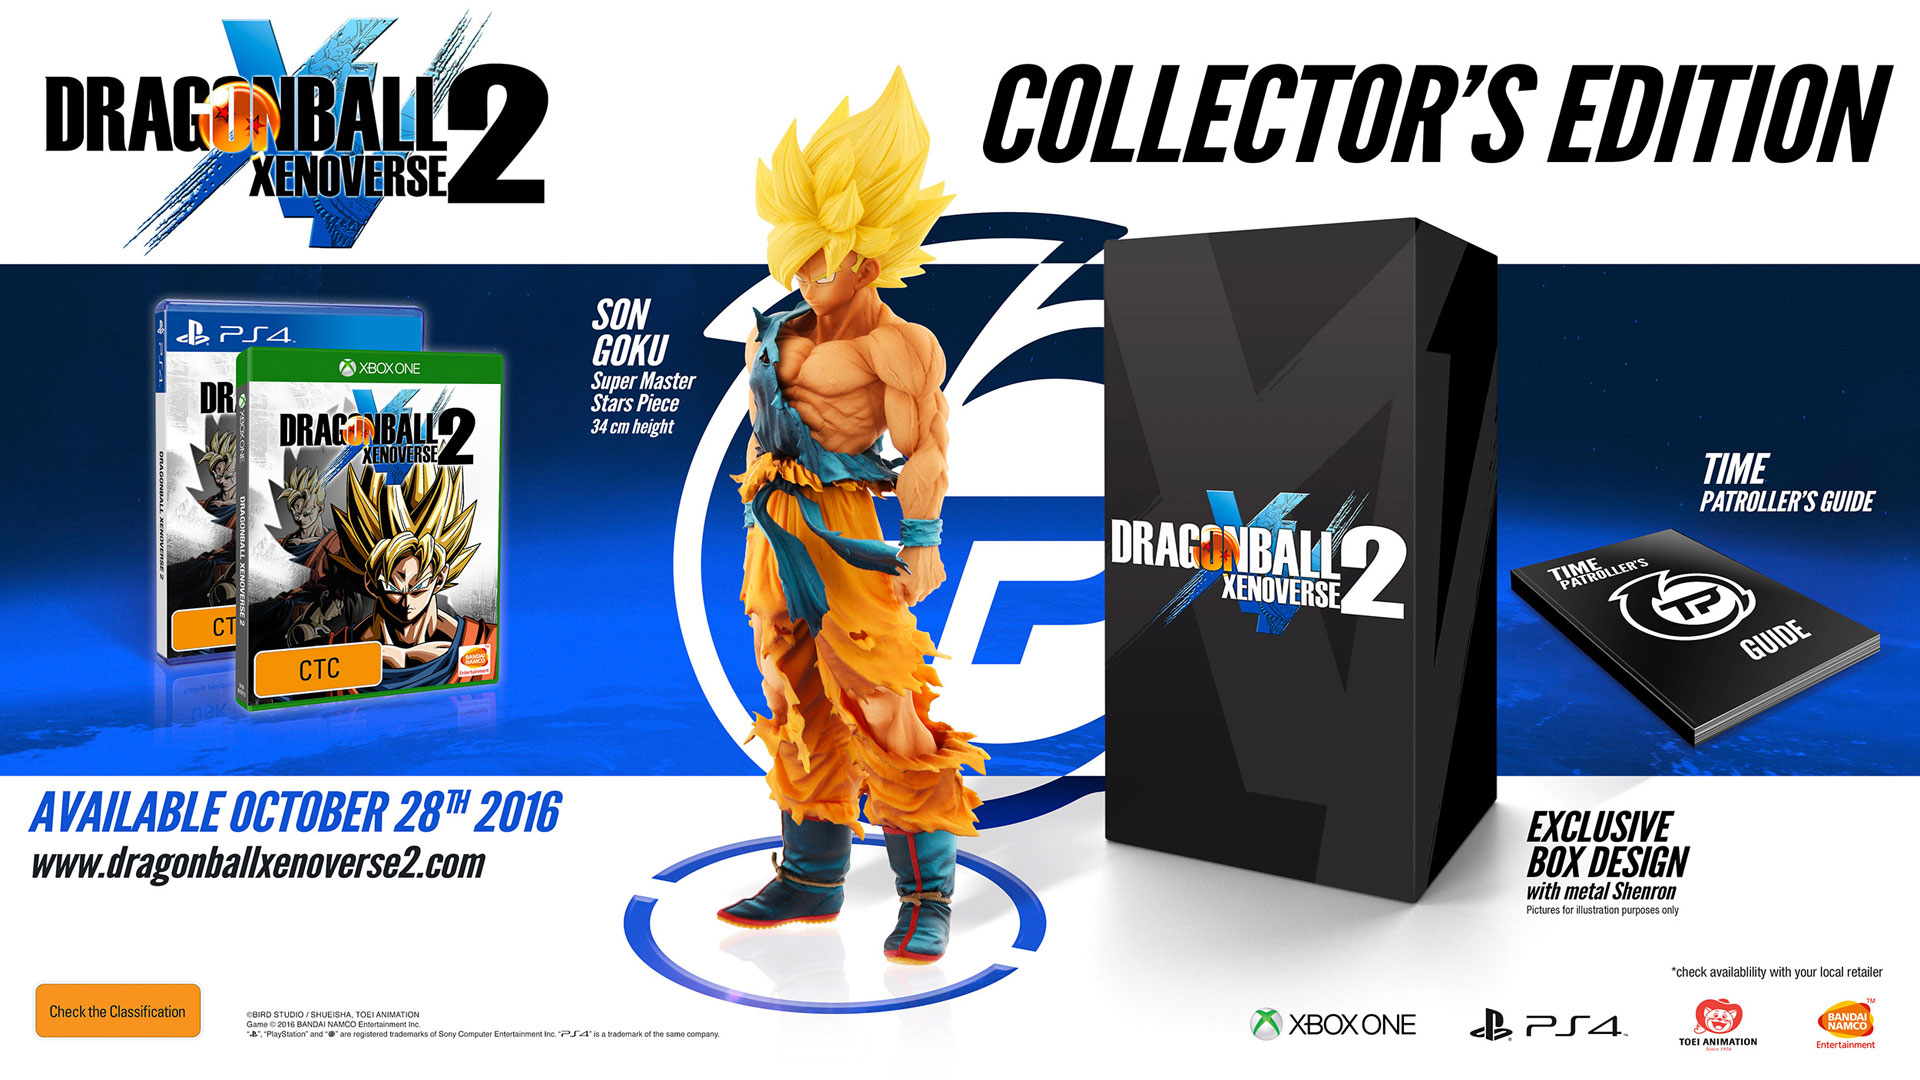 dragon ball xenoverse 2 collector's edition